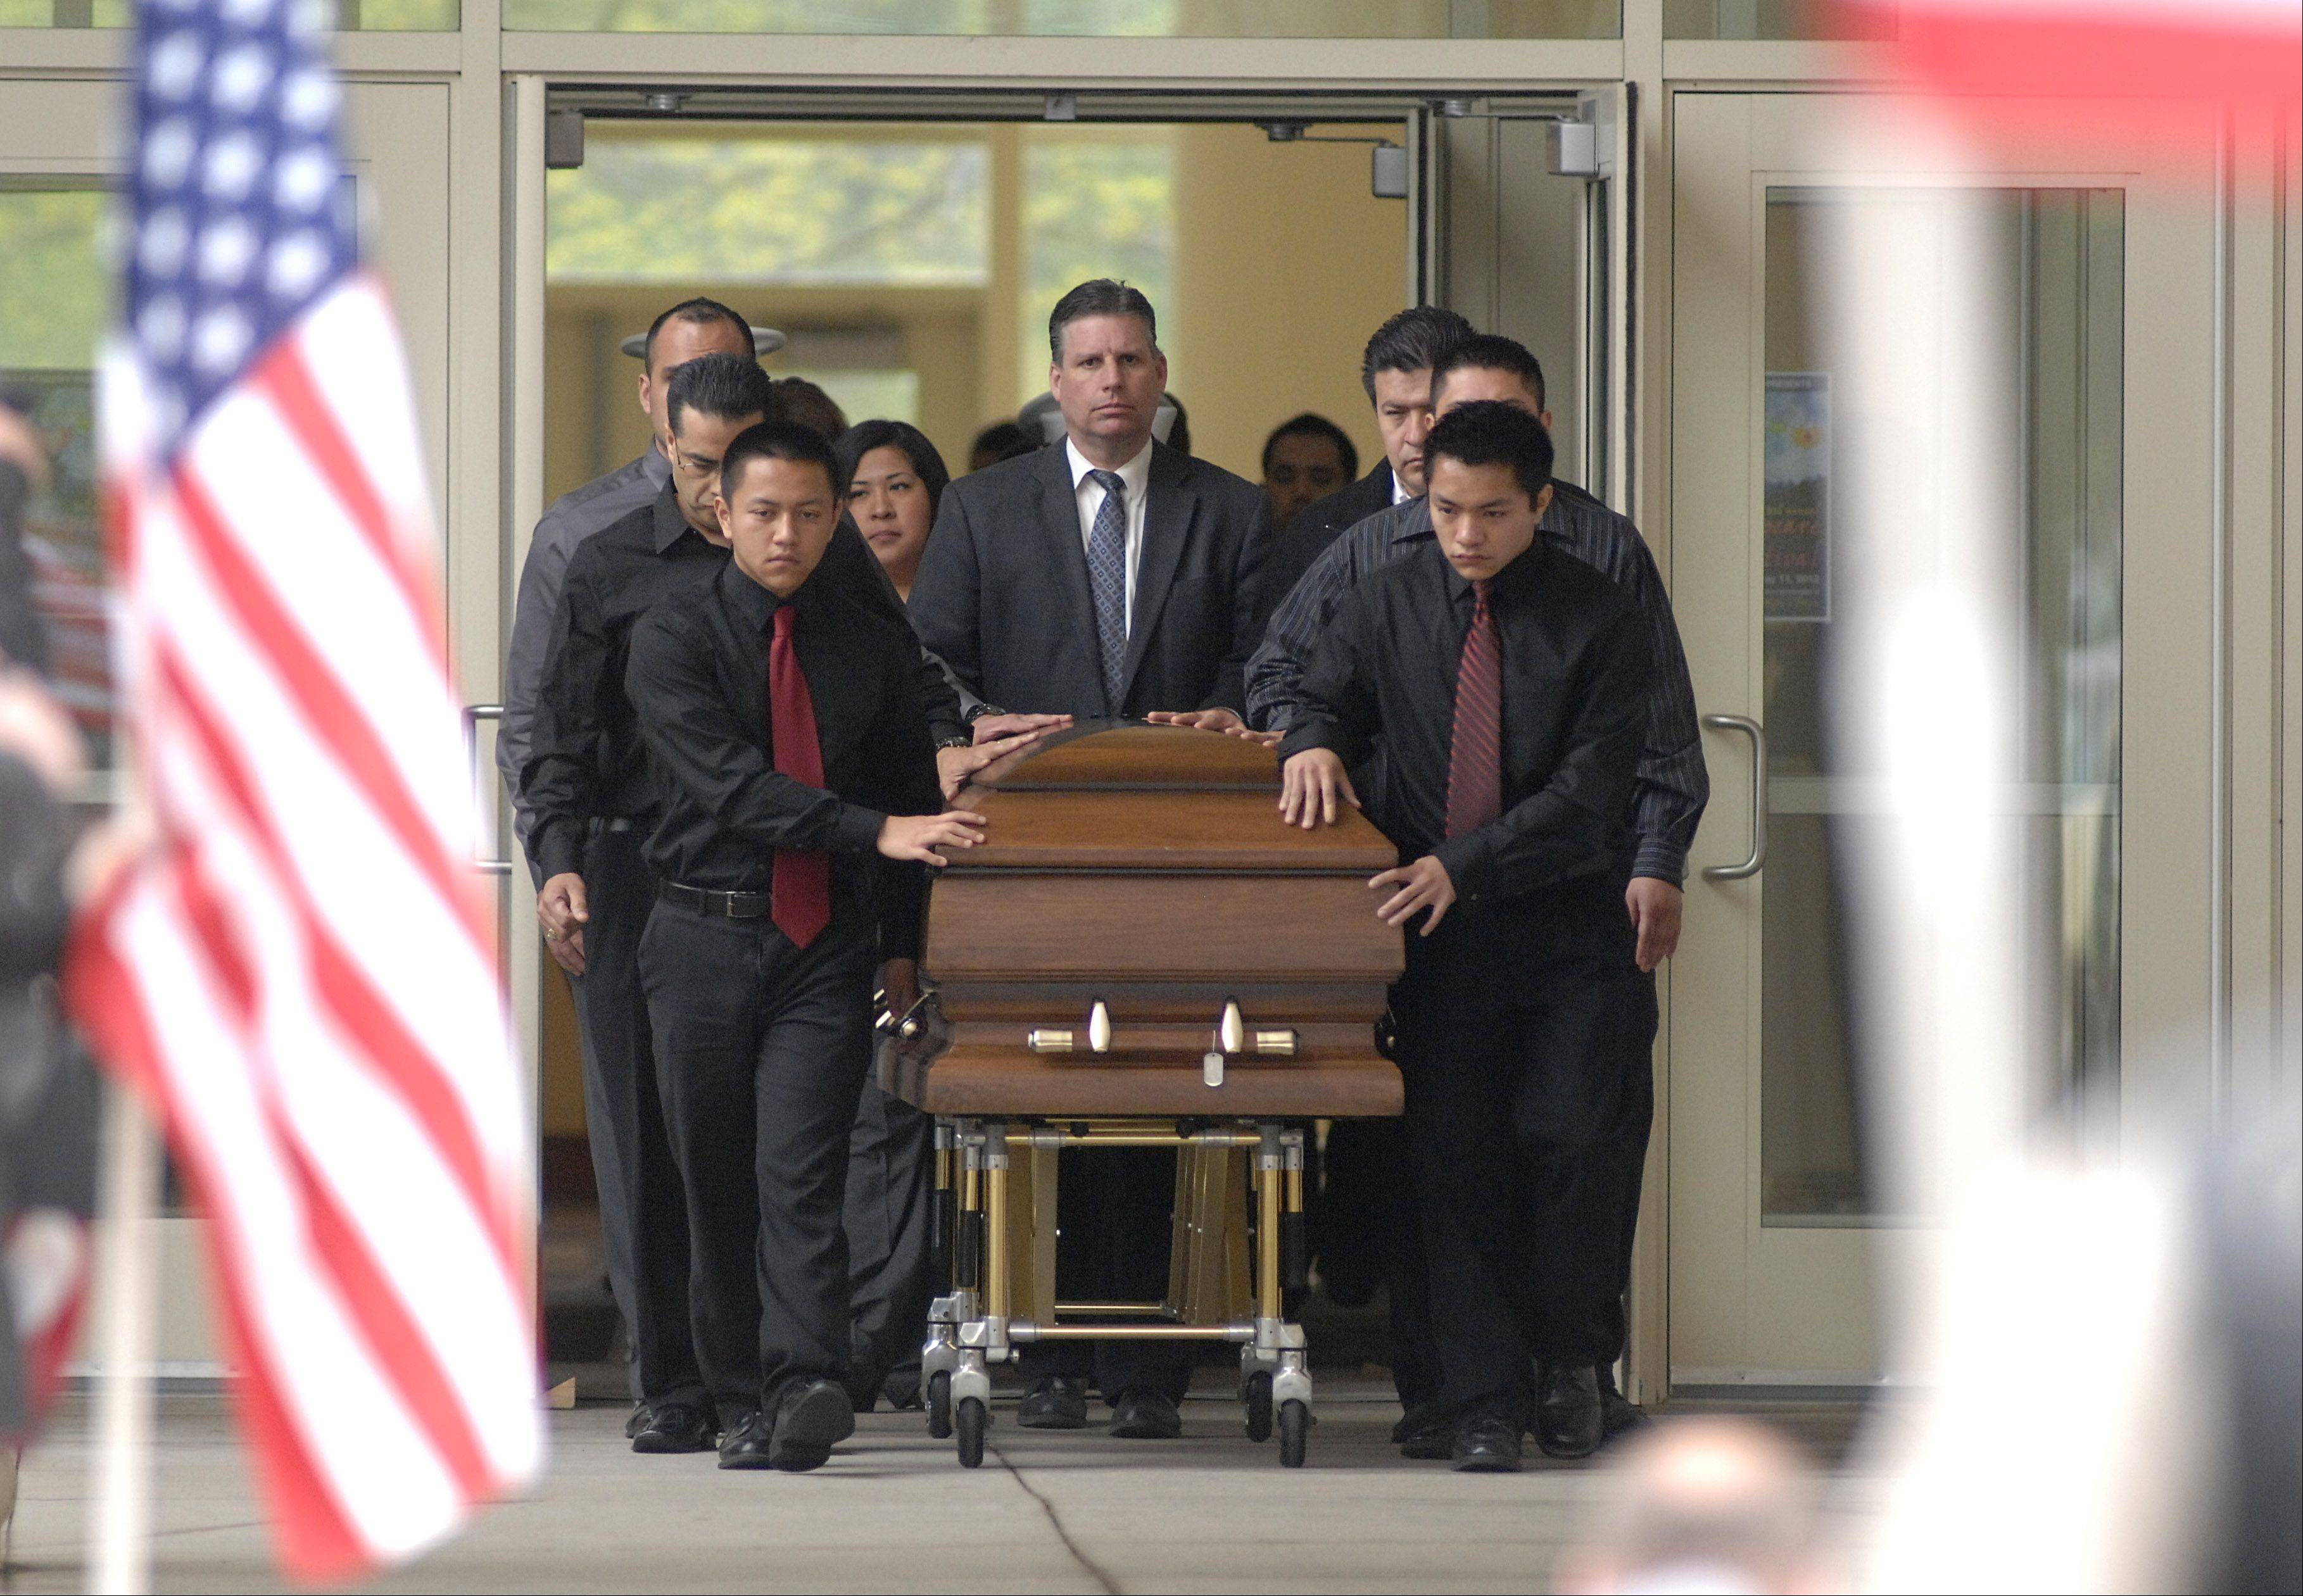 The casket of Cpl. Alex Martinez is escorted out of Life Changers International Church, with widow Julianna Martinez following, after his funeral in Hoffman Estates on Saturday. The Marine from Elgin was killed during combat operations in Afghanistan.